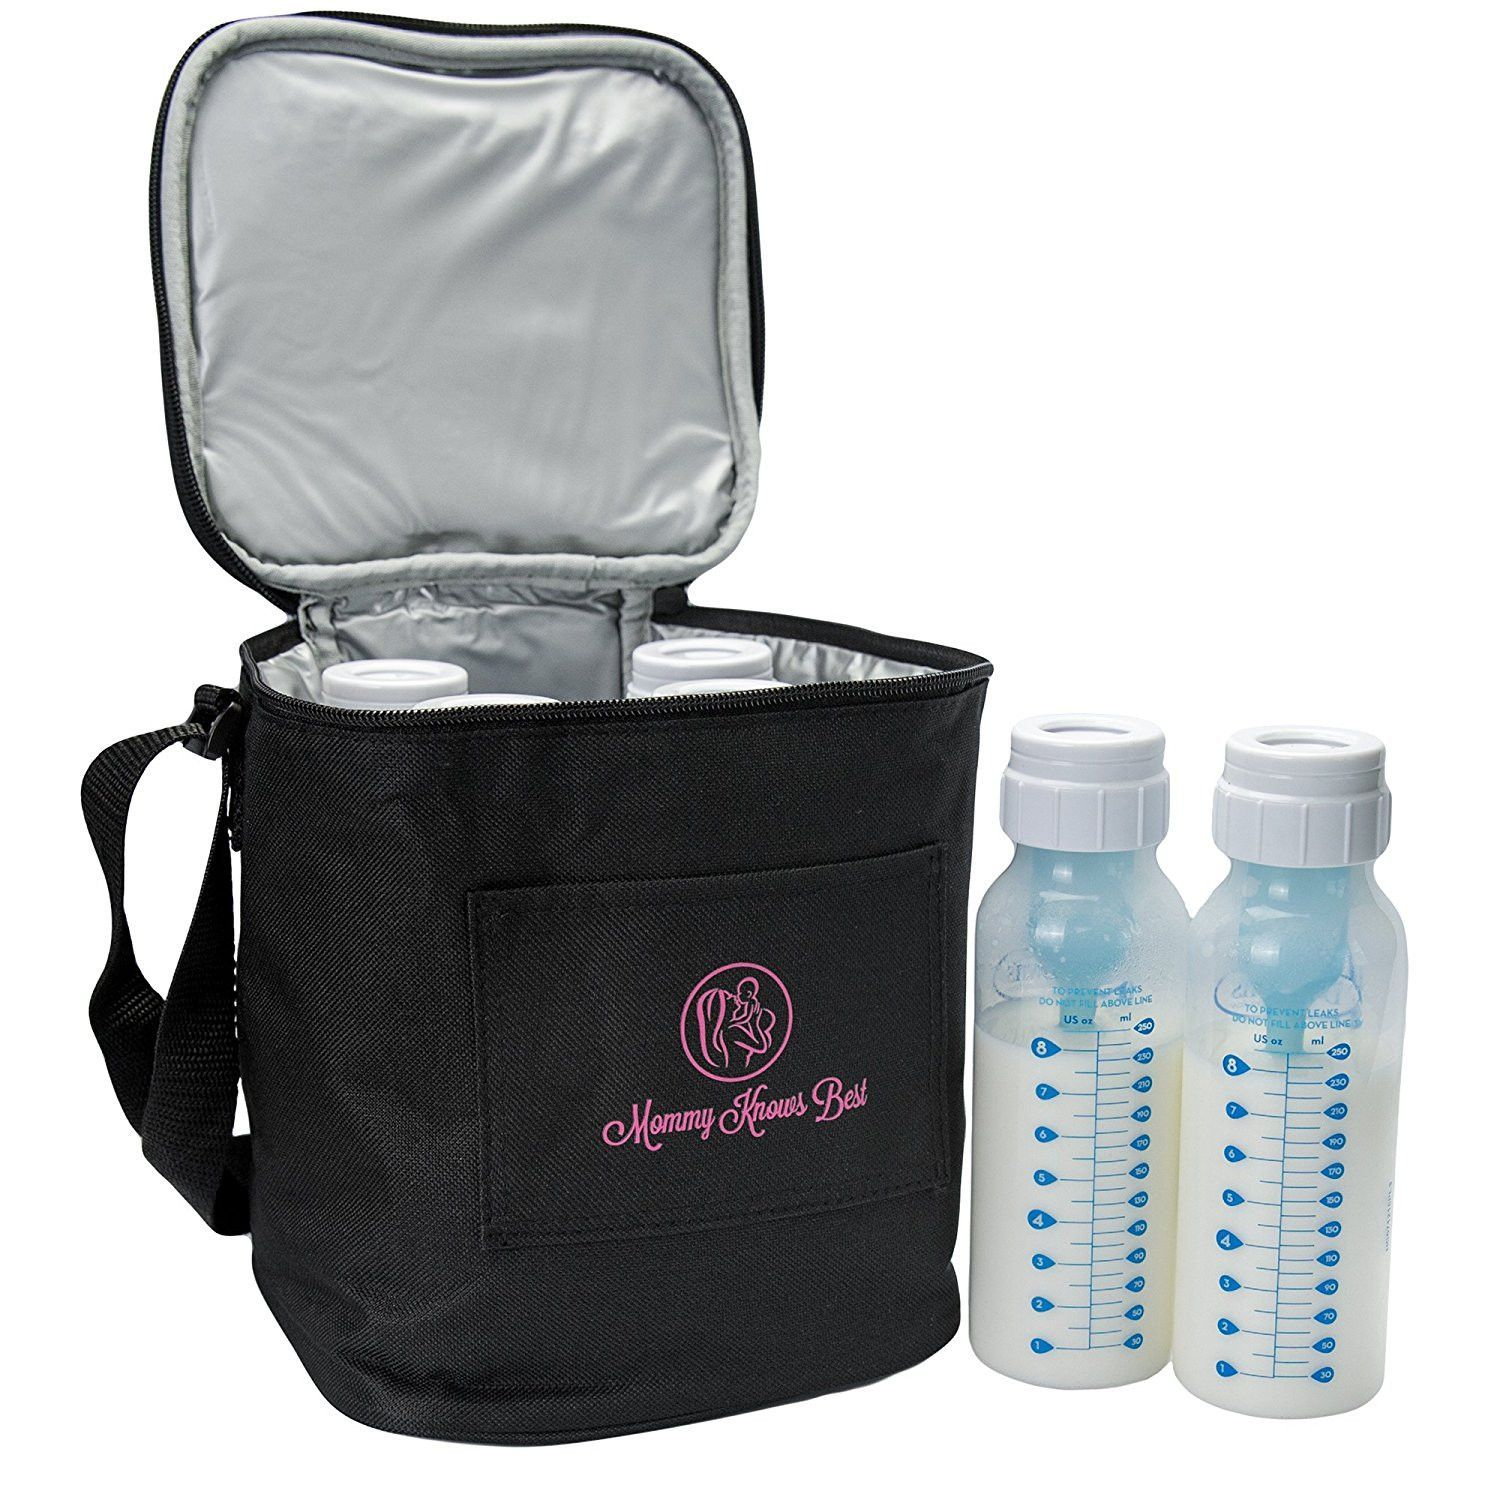 Breast Milk Baby Bottle Cooler Bag For Insulated Breastmilk Storage w//Air Tight Design to Lock in the Cold /& Preserve Important Nutrients for Your Baby